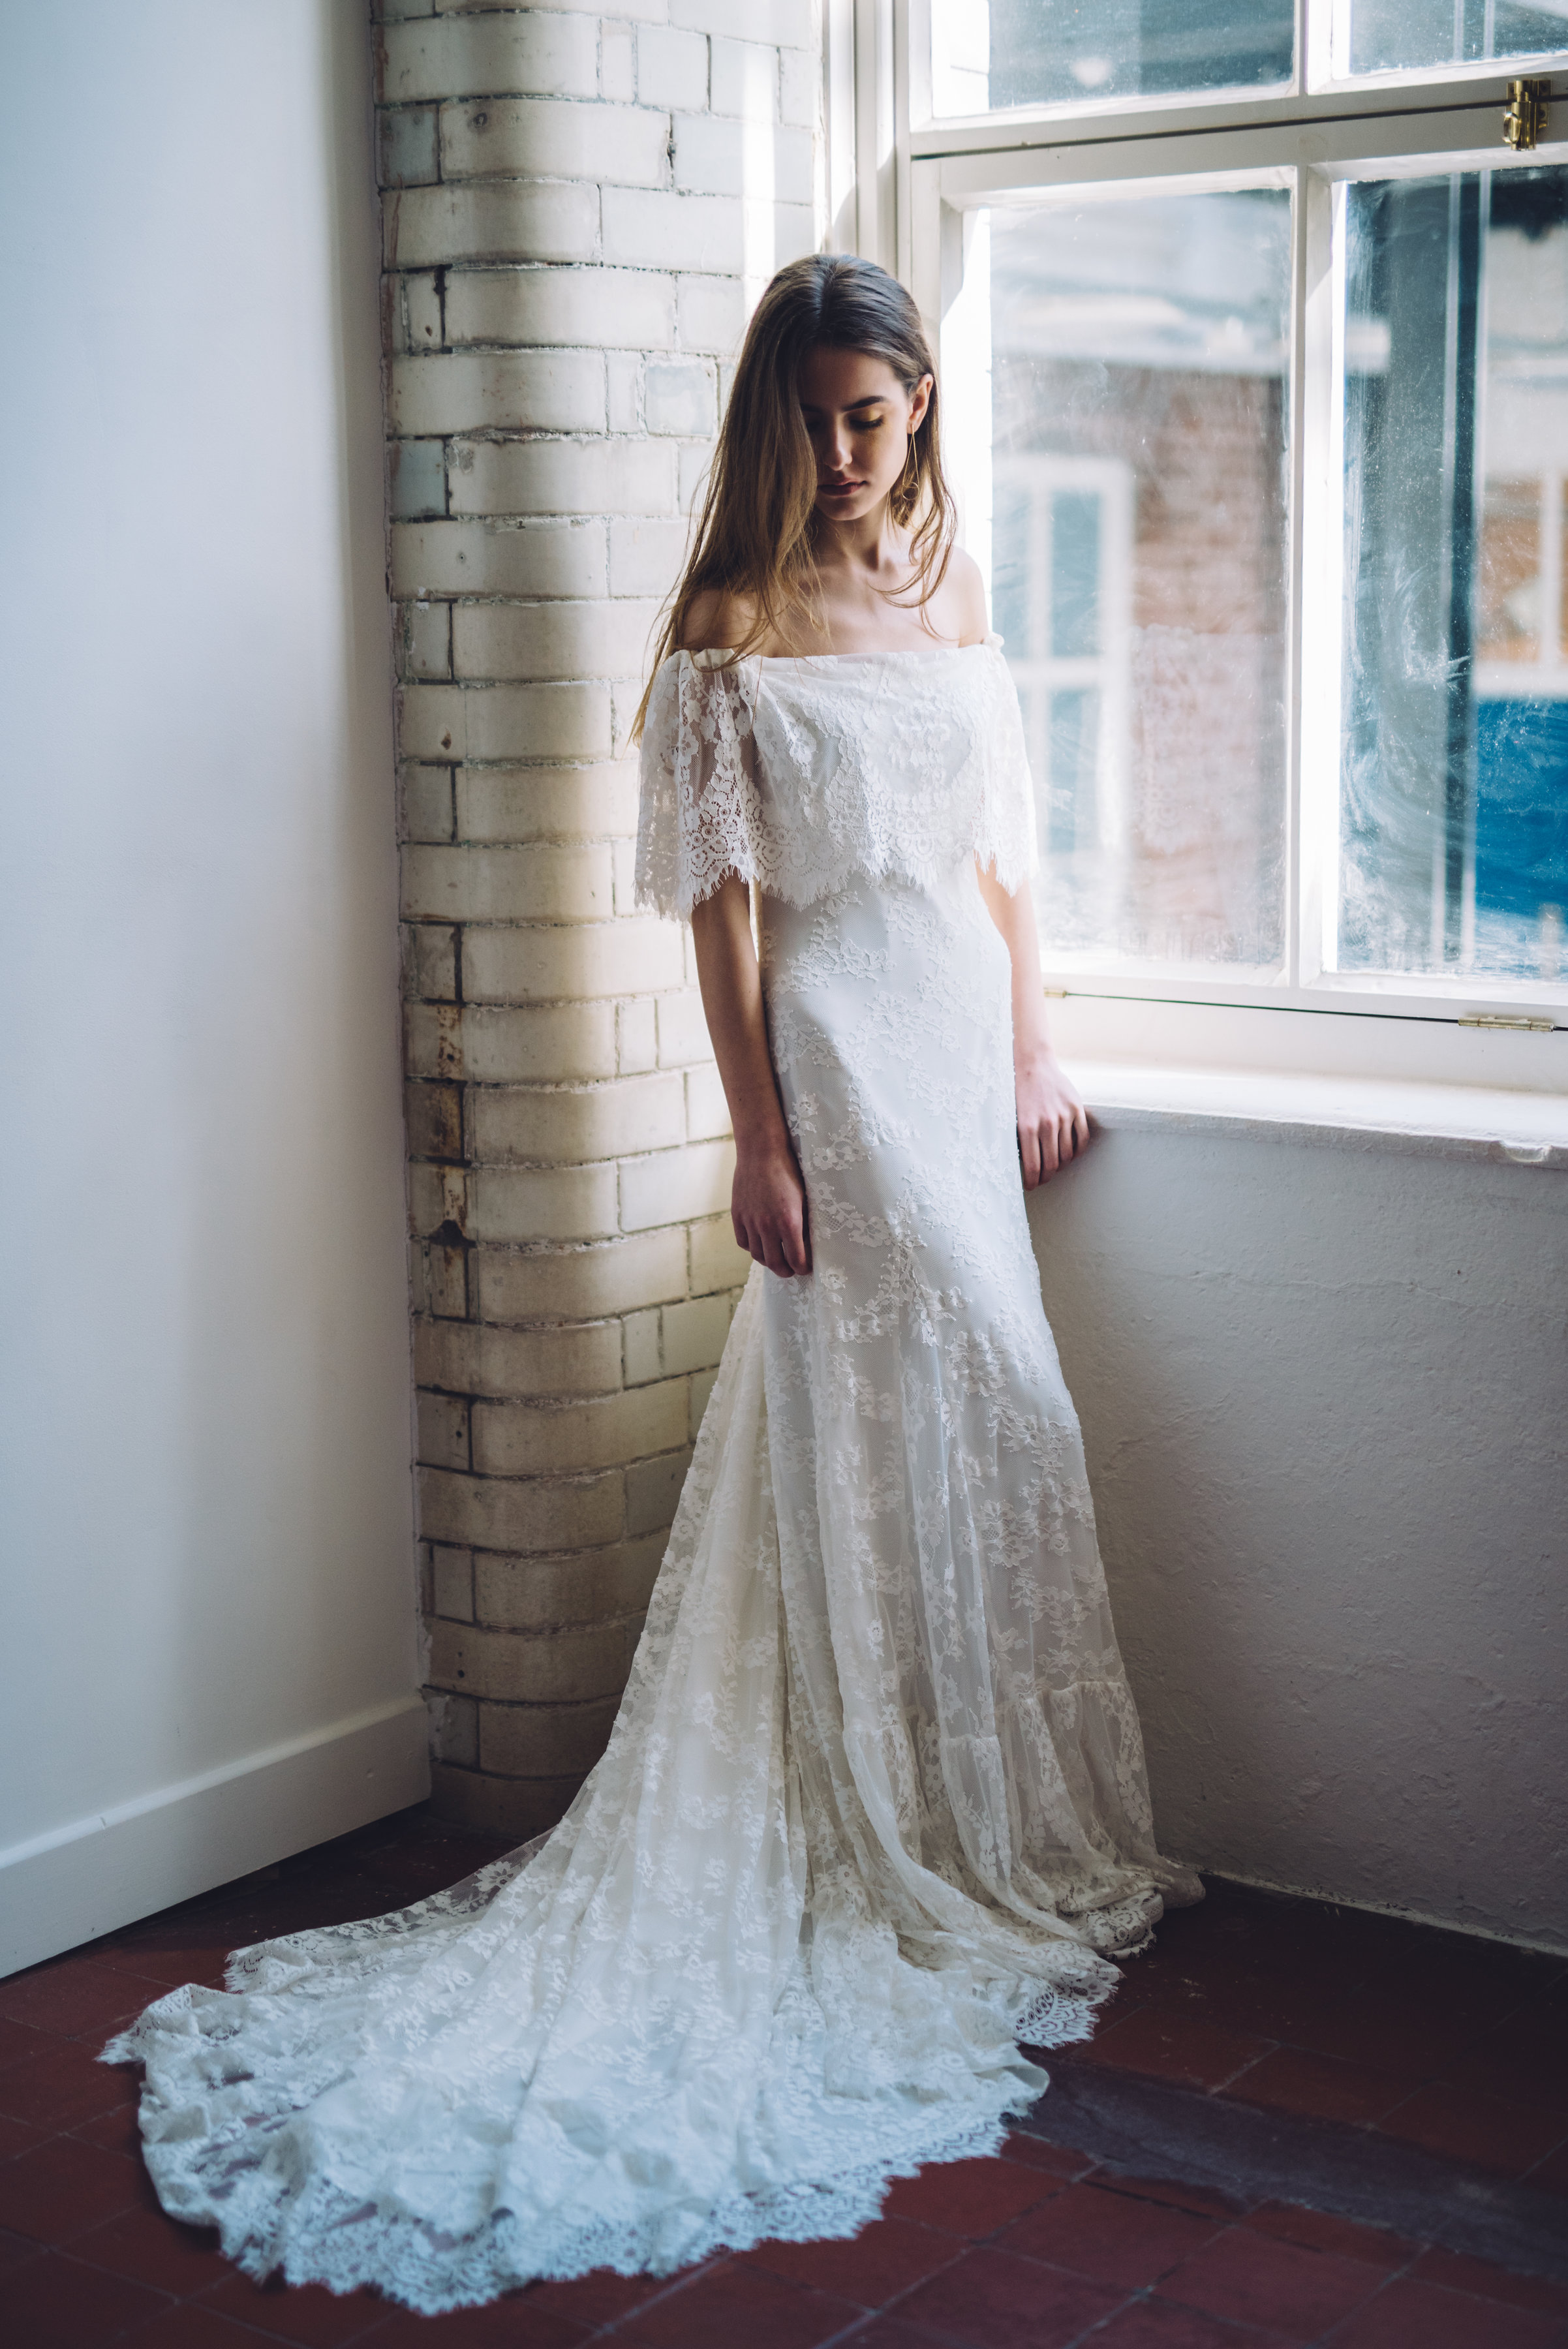 Archive 12 Look Book Belfast Boutique For The Stylish & Bohemian Bride